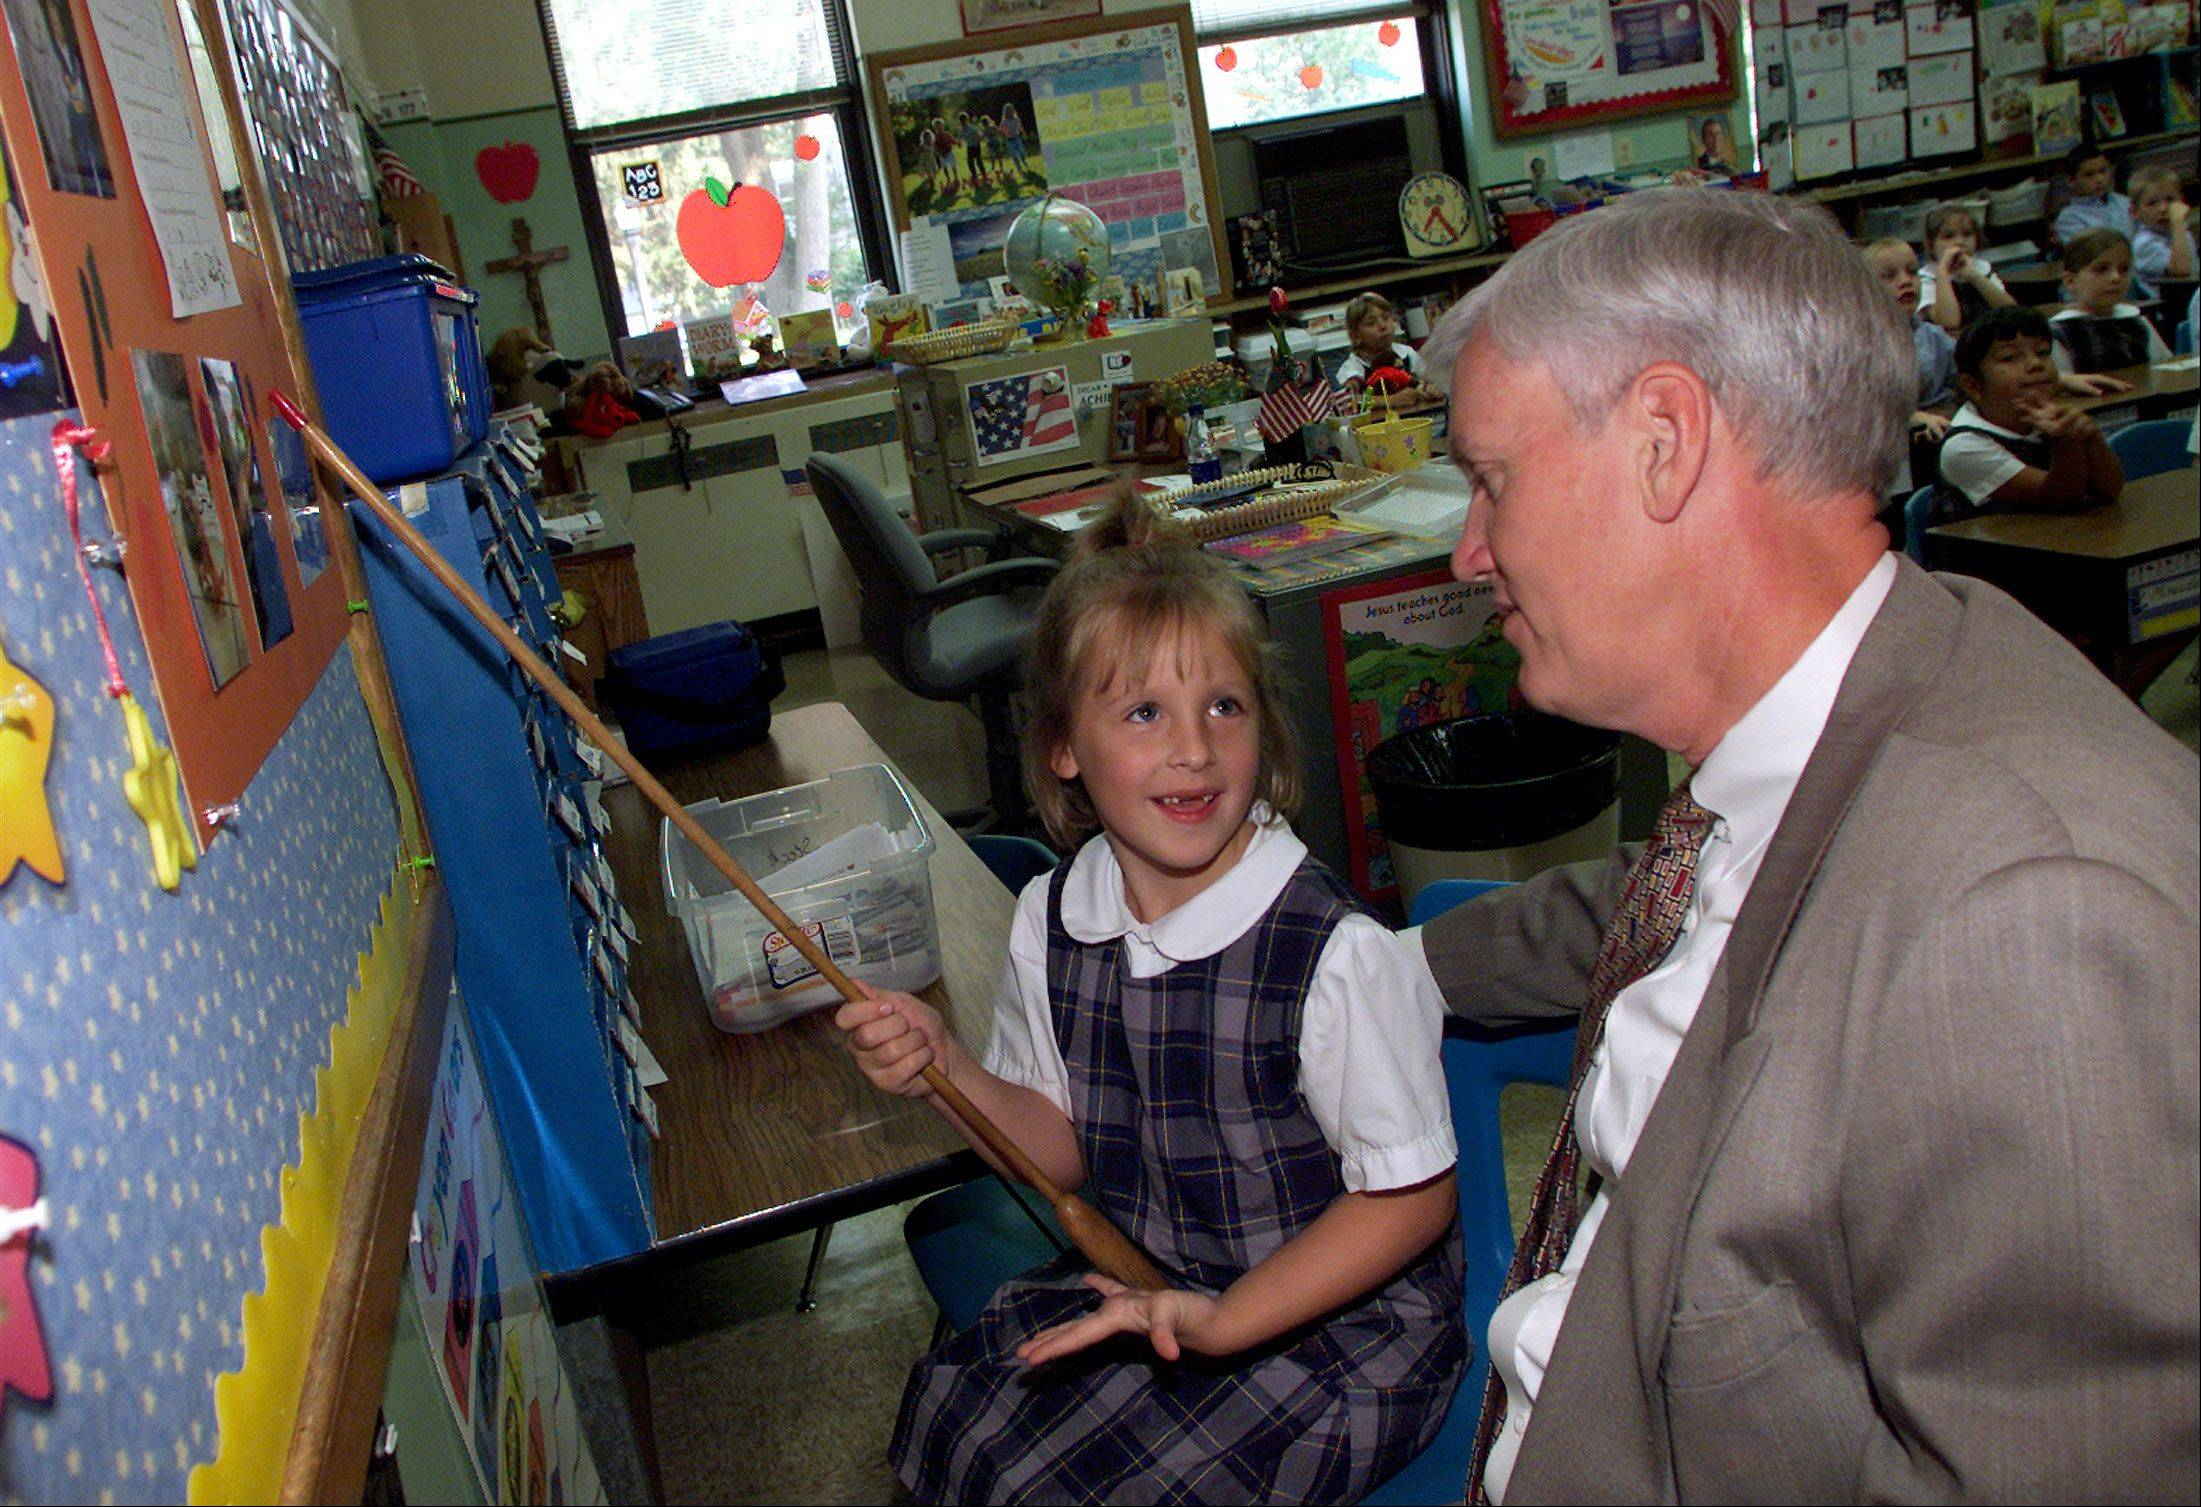 Longtime Ss. Peter and Paul School Principal Frank Glowaty hears a presentation from a student in this 2003 photo. Glowaty announced Thursday night that he will retire at the end of this school year after 39 years as principal at the school affiliated with Naperville�s oldest Catholic church.